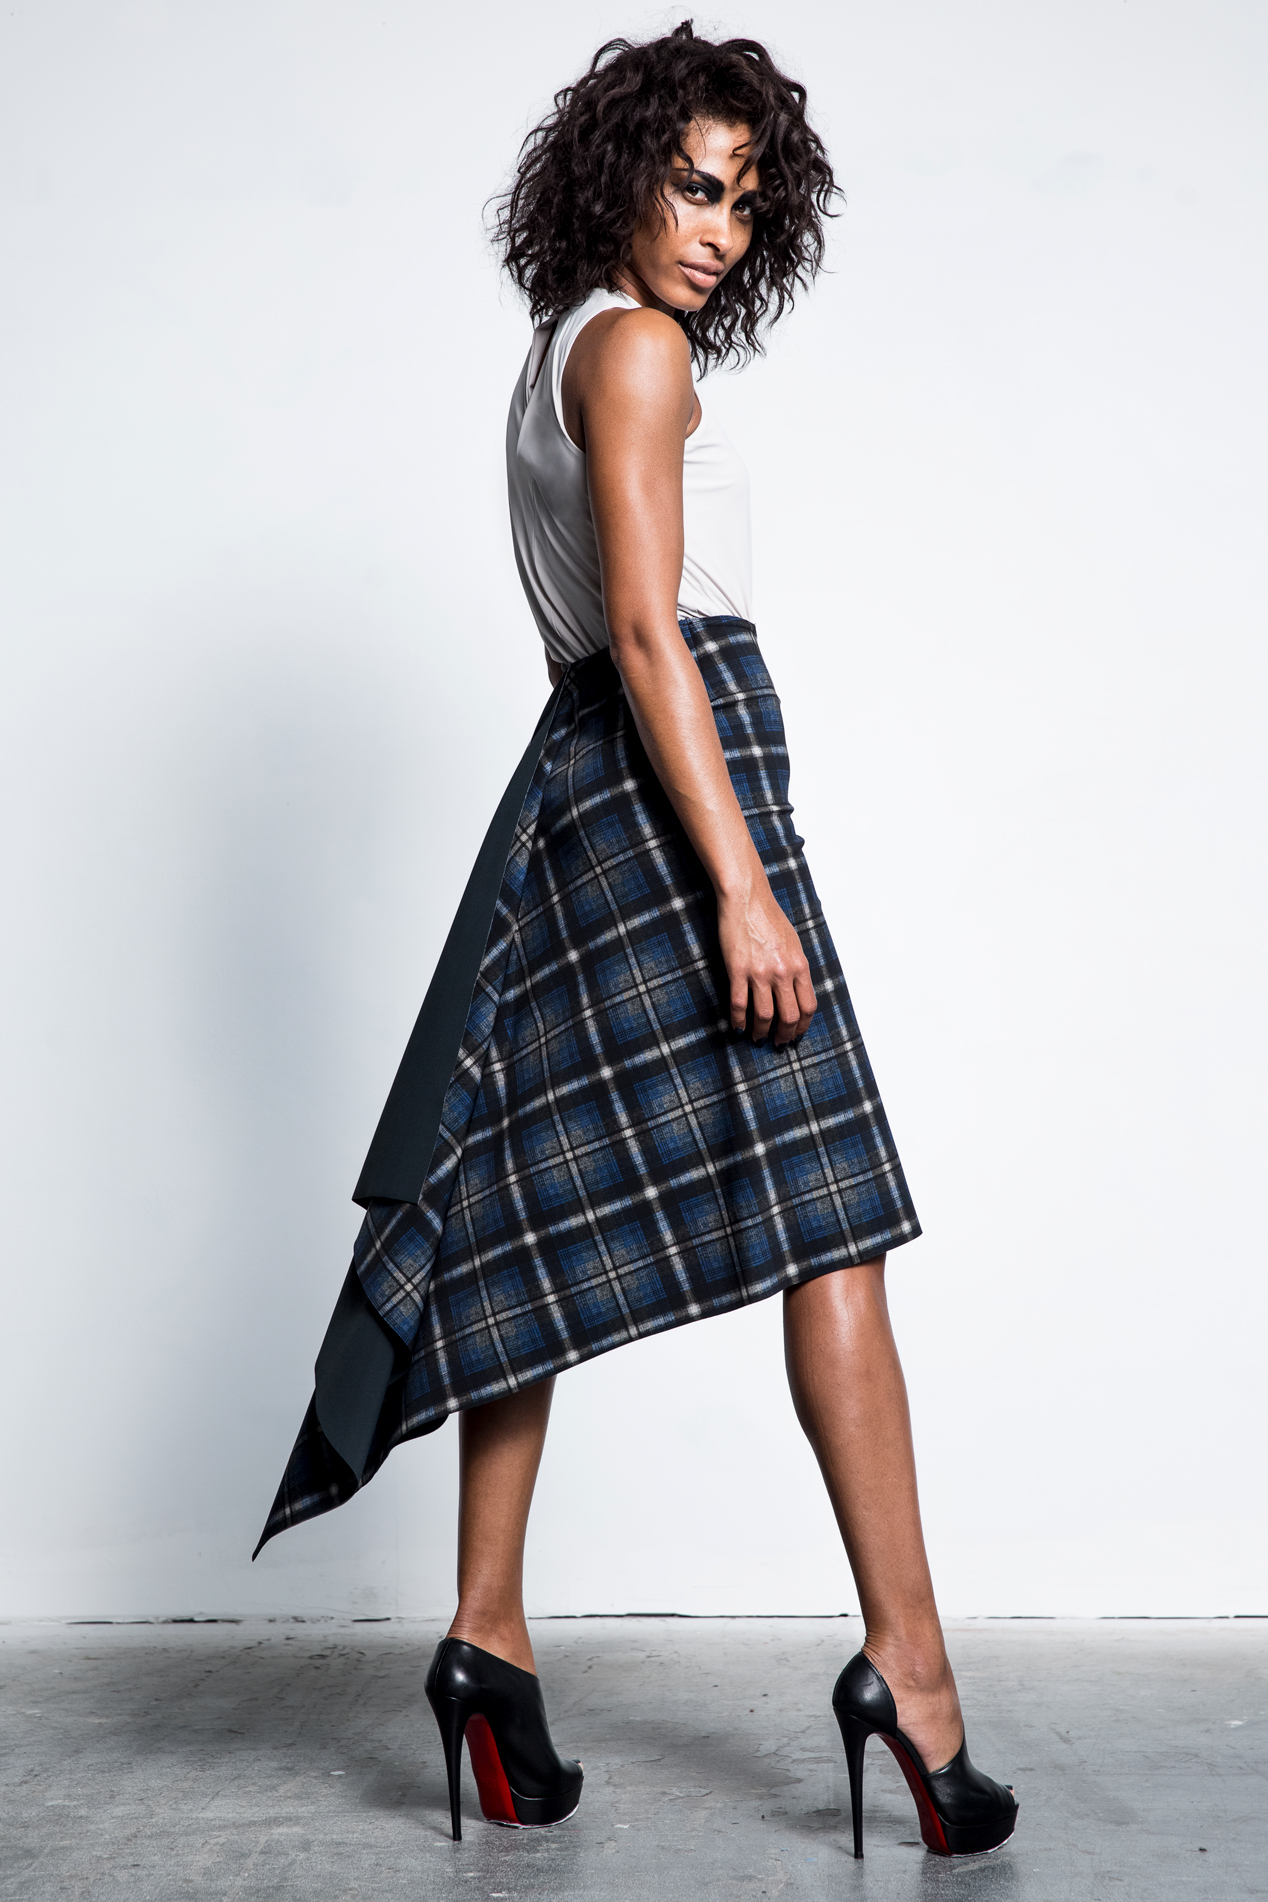 This Glenda skirt was made with one single piece of fabric.